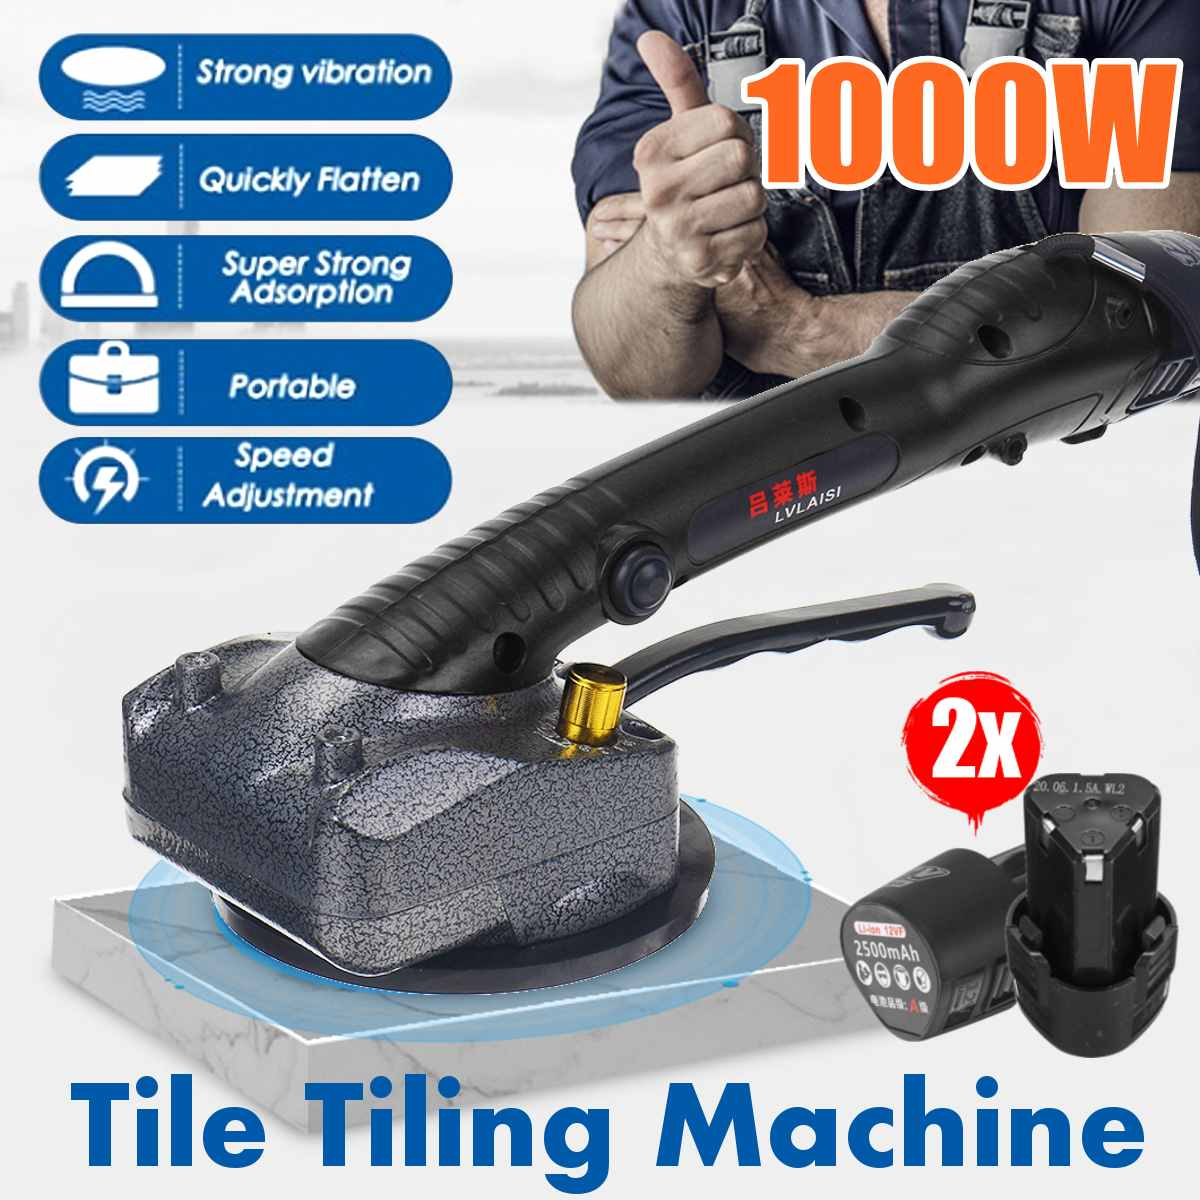 1000W vibrator for tiles 80x80cm tiling Plastering machine laying tiles with 2x2500mAh battery automatic floor vibrator leveling